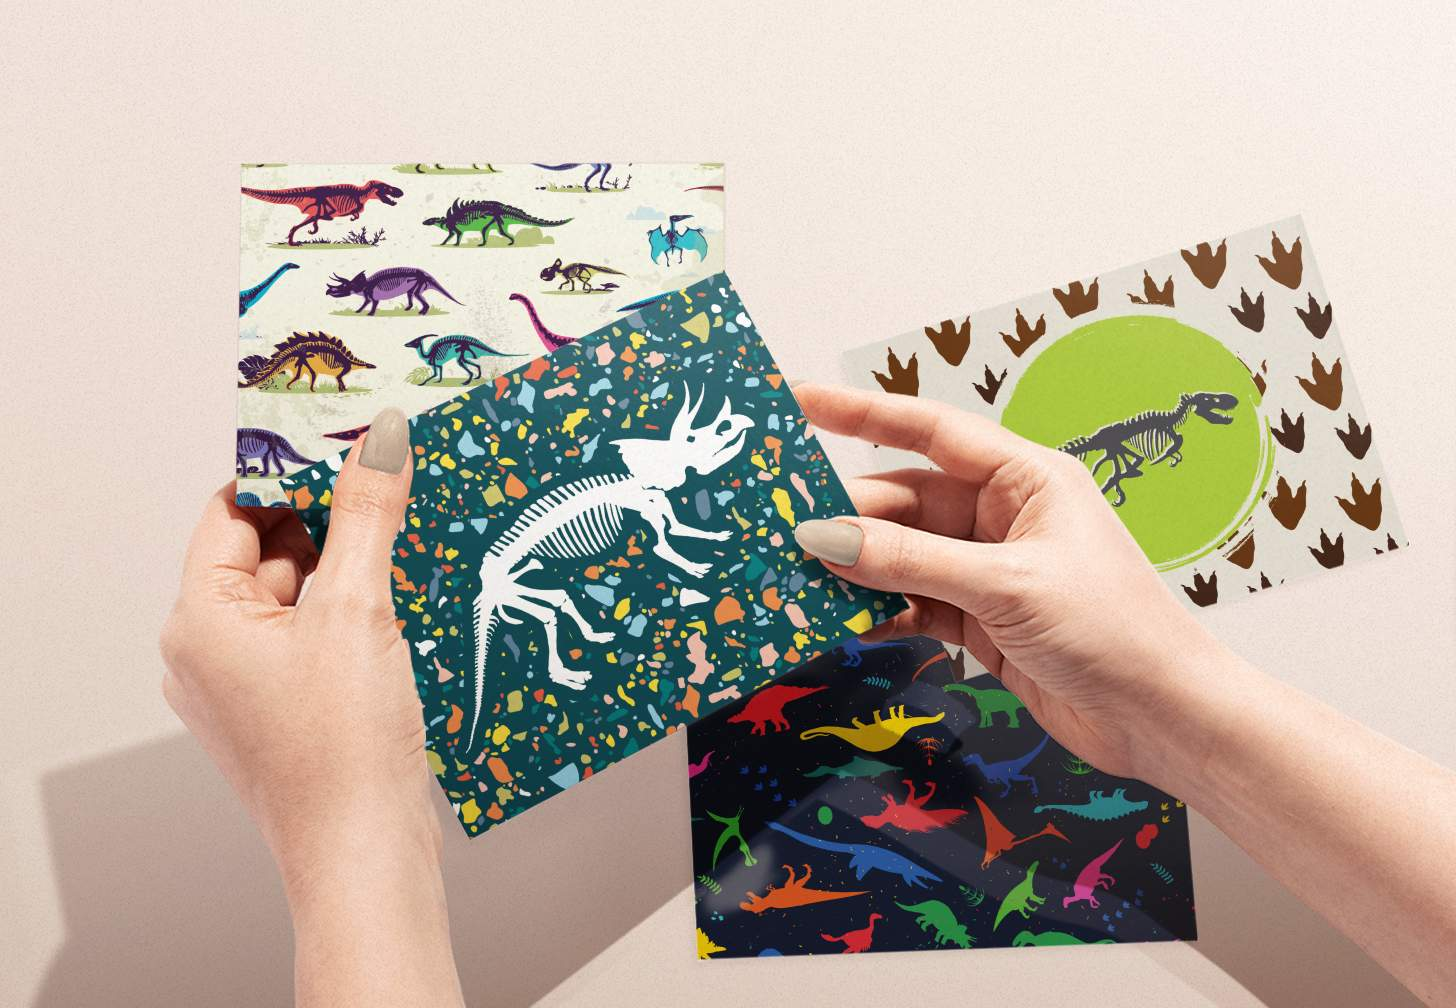 Woman's hands holding dinosaur bones design card with various dinosaur designs in background